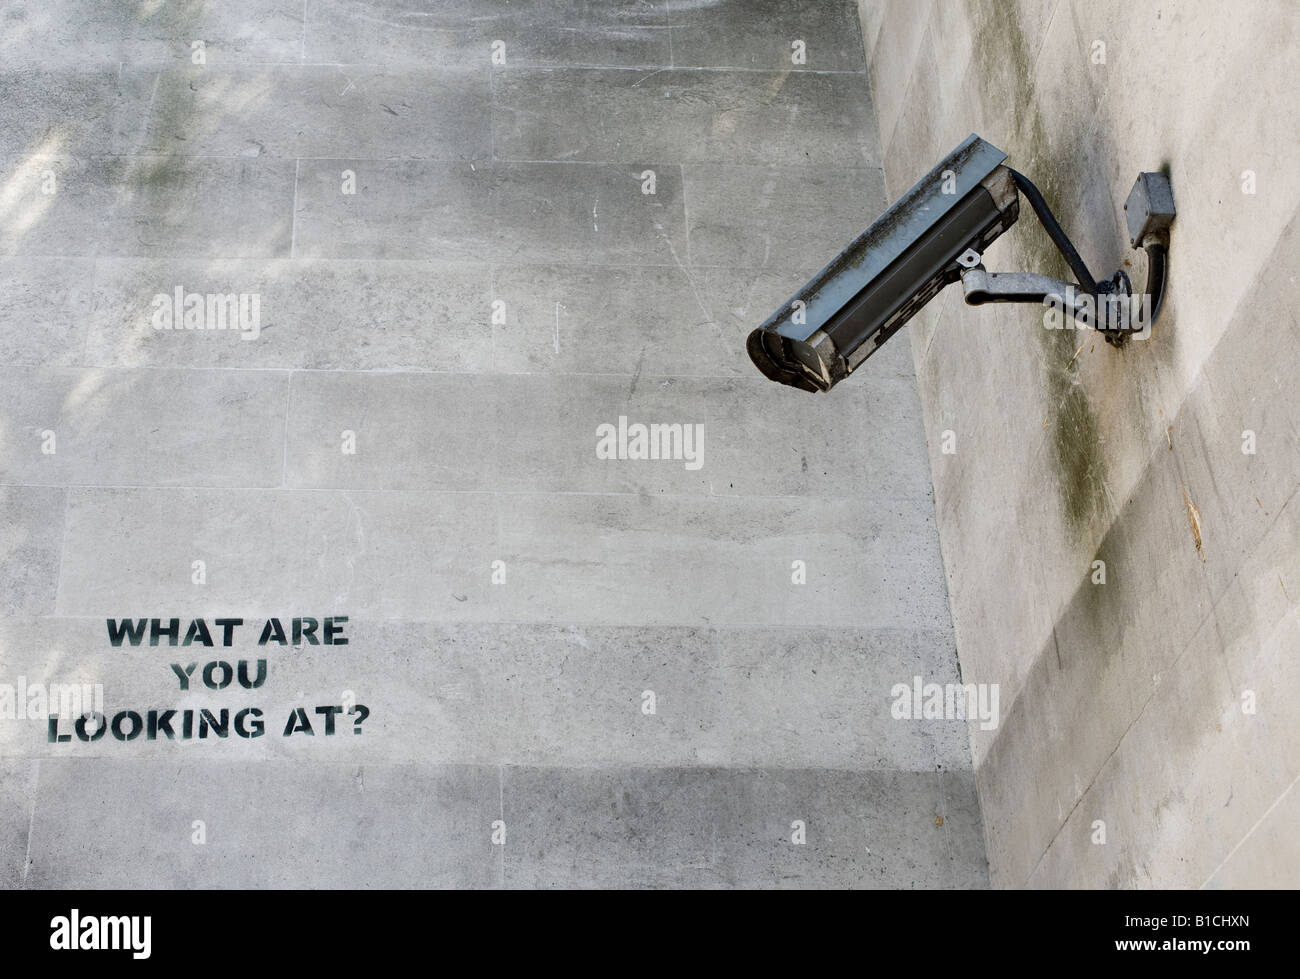 Composite Image Of Stencil Graffiti >> Cctv Camera And What Are You Looking At Stencil Graffiti By Banksy